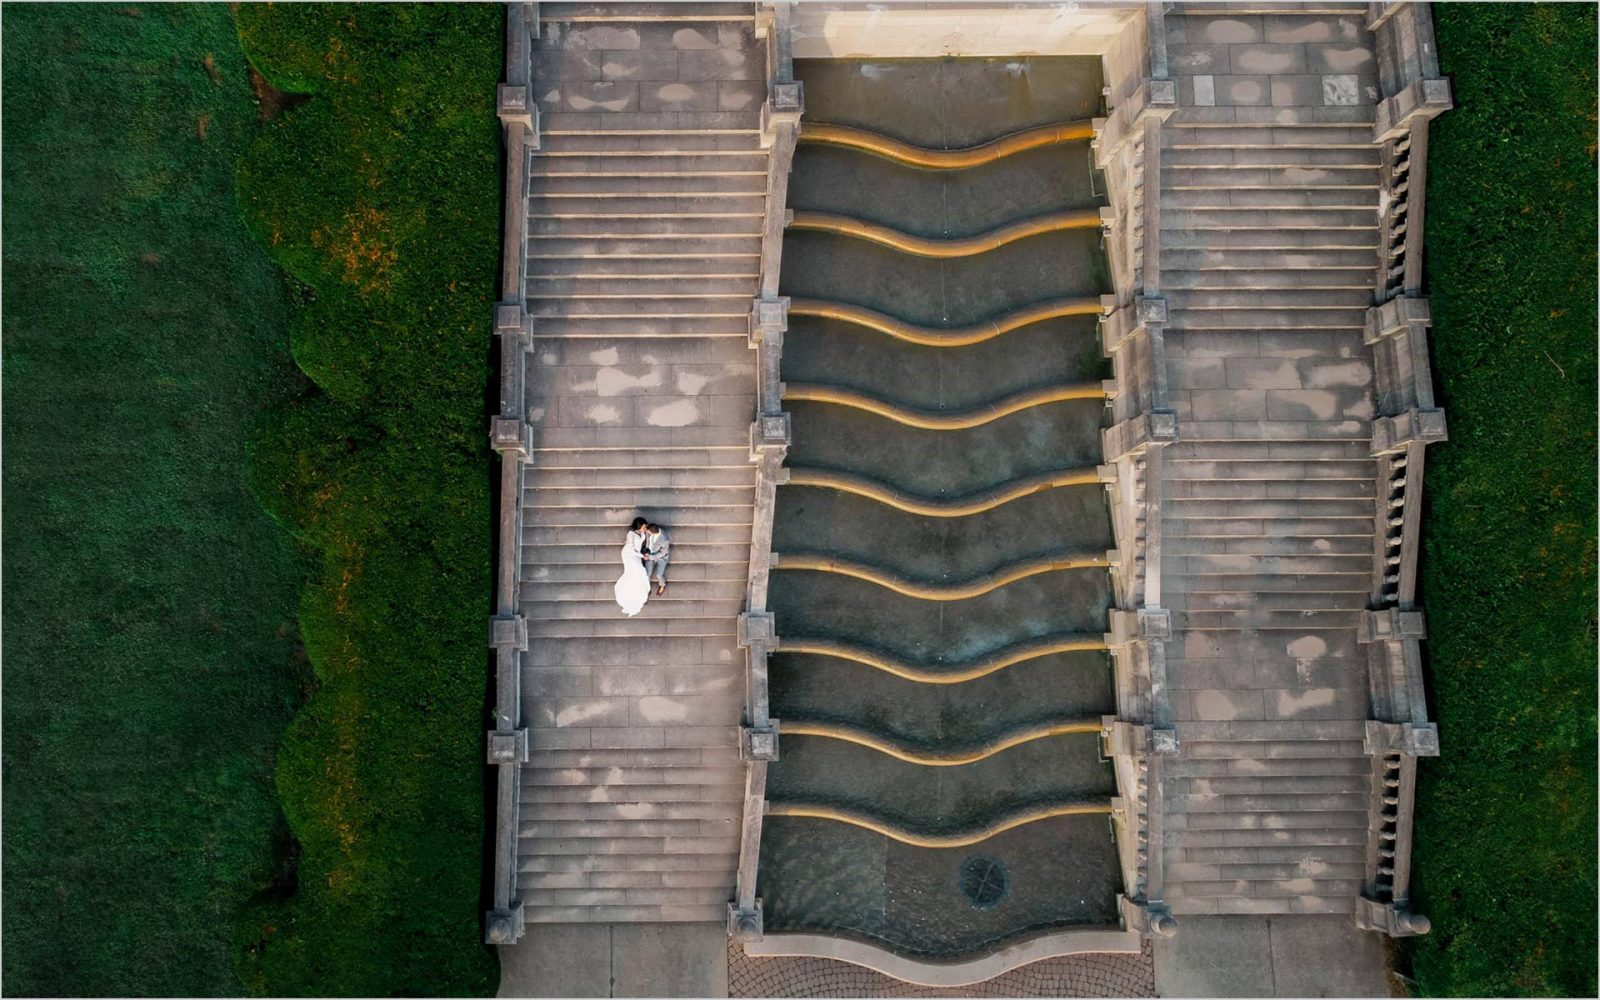 Ault Park drone fountain